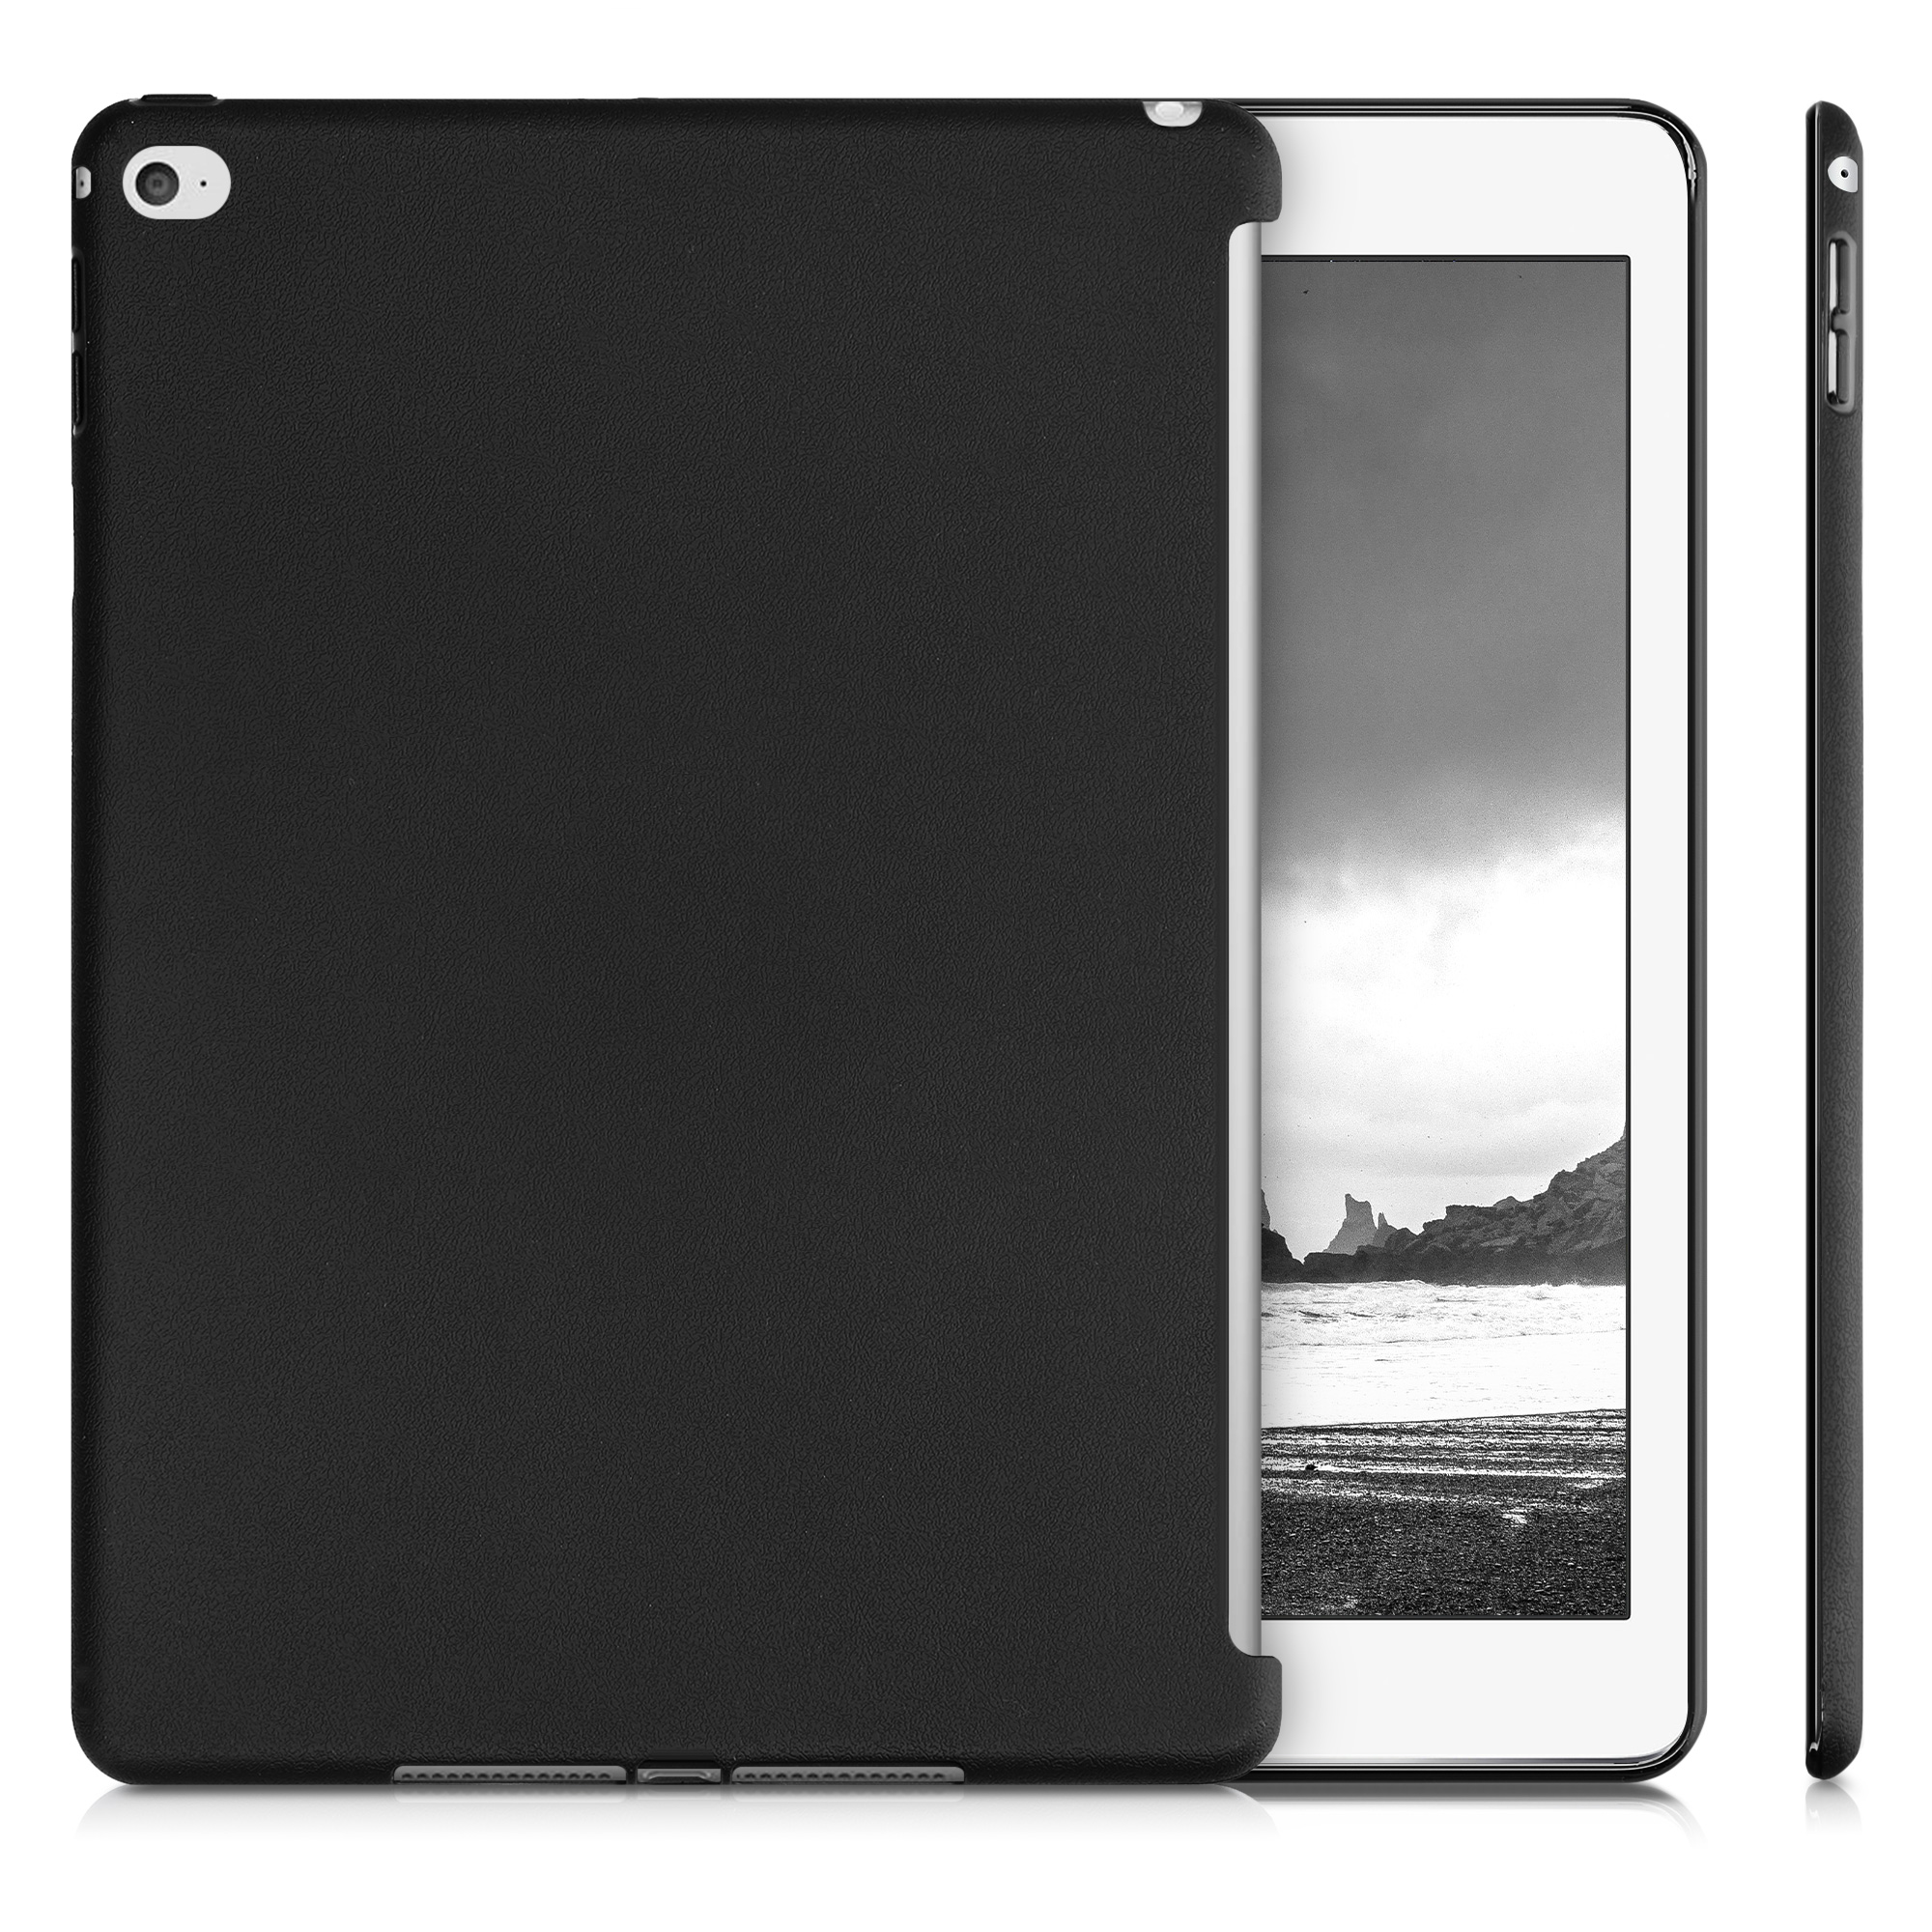 tpu silikon case f r apple ipad air 2 silikon h lle case cover tasche tablet ebay. Black Bedroom Furniture Sets. Home Design Ideas